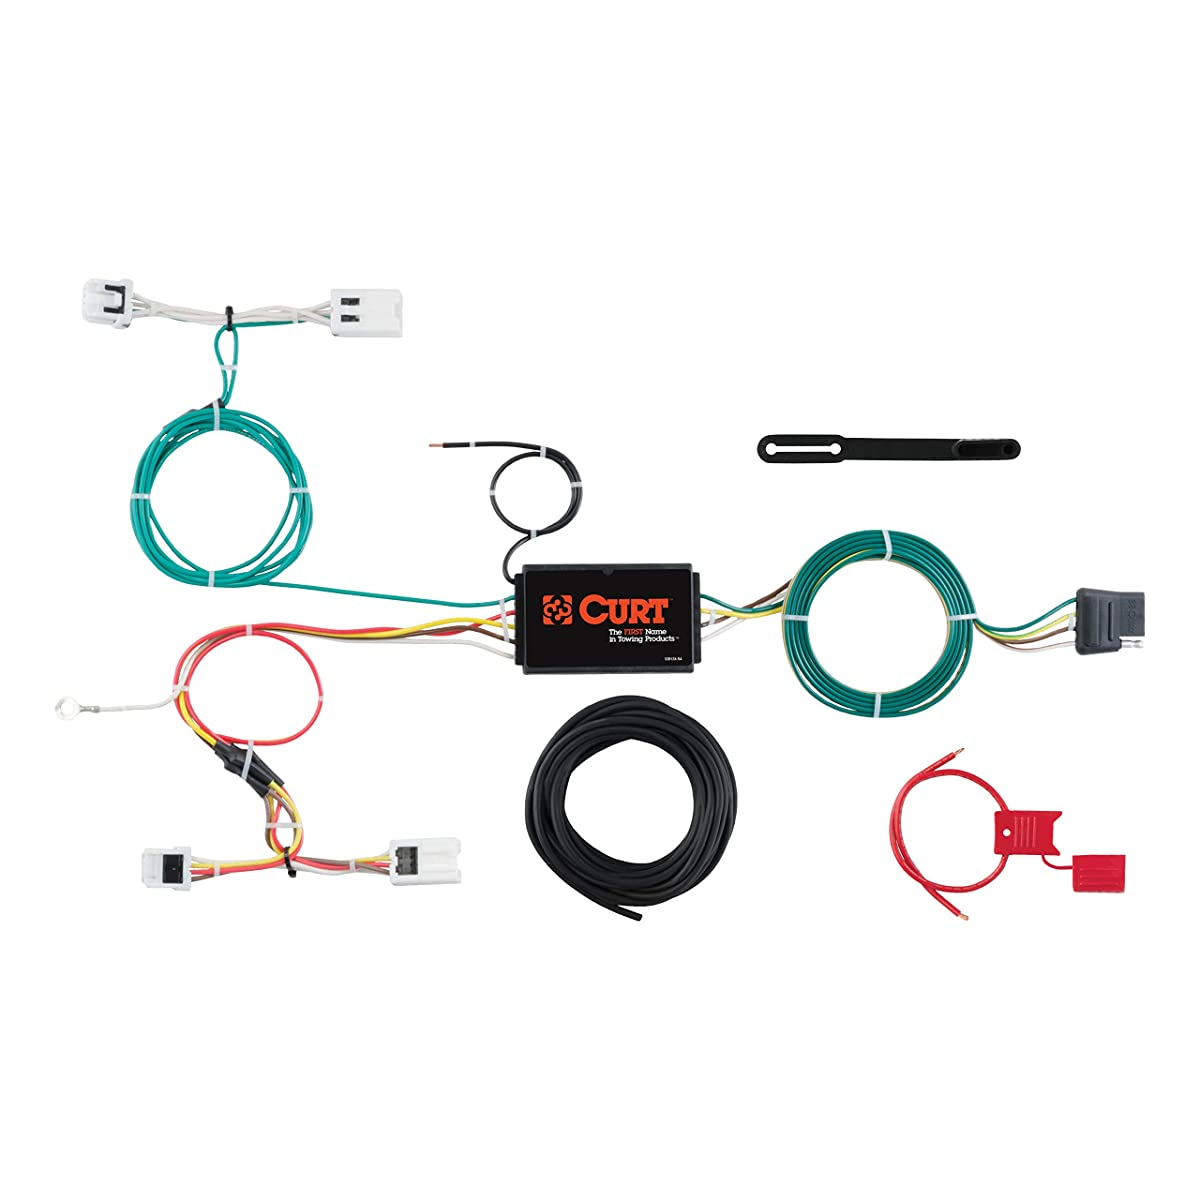 CURT 56279 Vehicle-Side Custom 4-Pin Trailer Wiring Harness for Select Chevrolet City Express, Nissan NV200